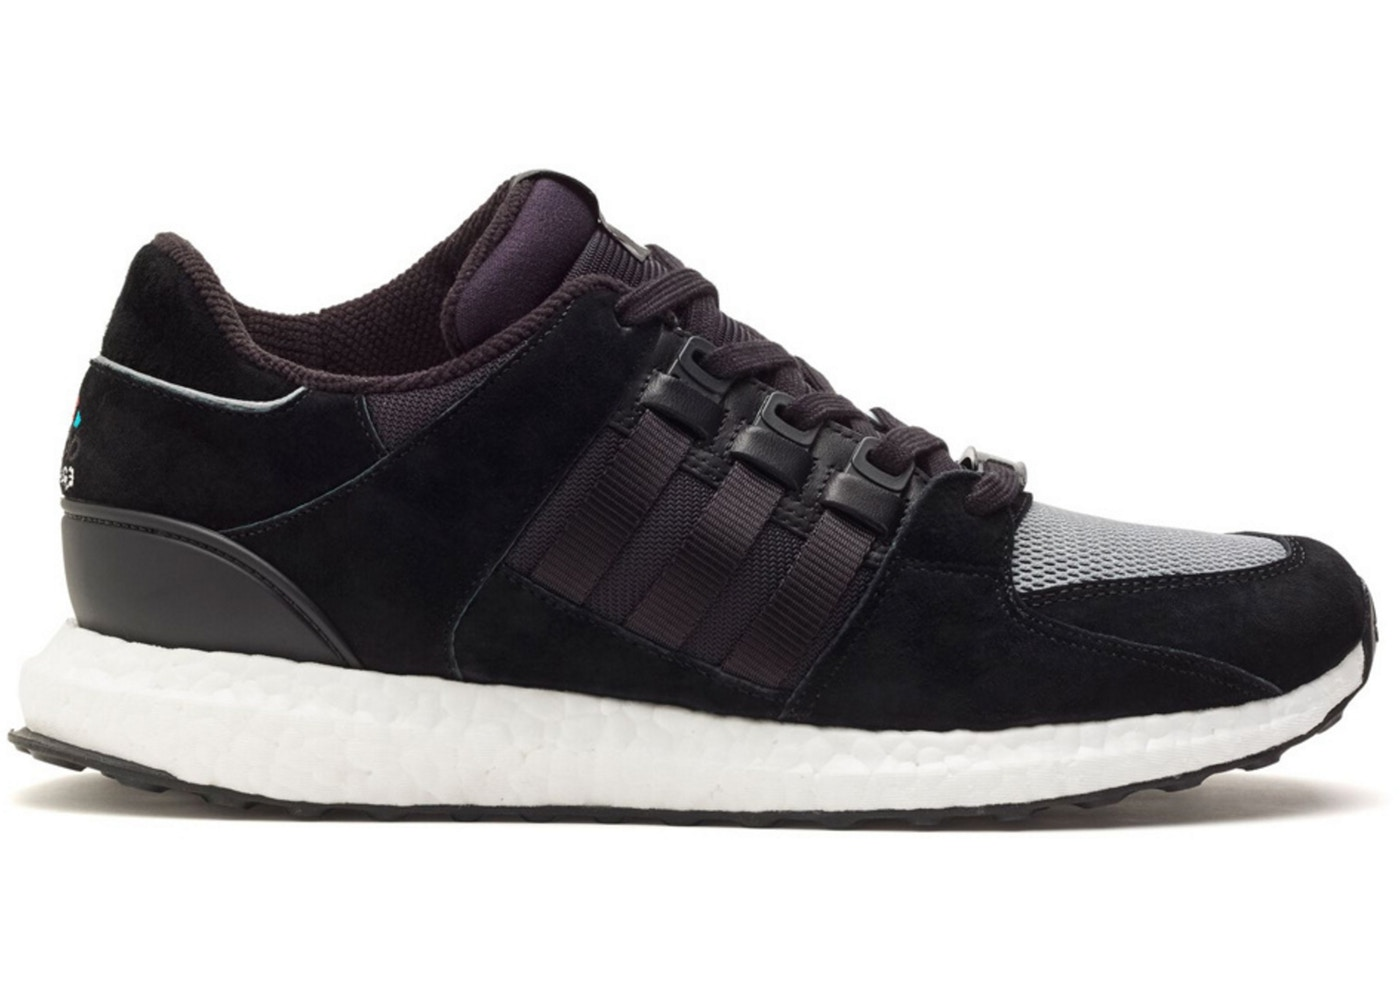 アディダス ADIDAS ウルトラ ブースト スニーカー 【 ULTRA BOOST EQT SUPPORT 93 16 CONCEPTS BLACK WHITE RED CORE 】 メンズ